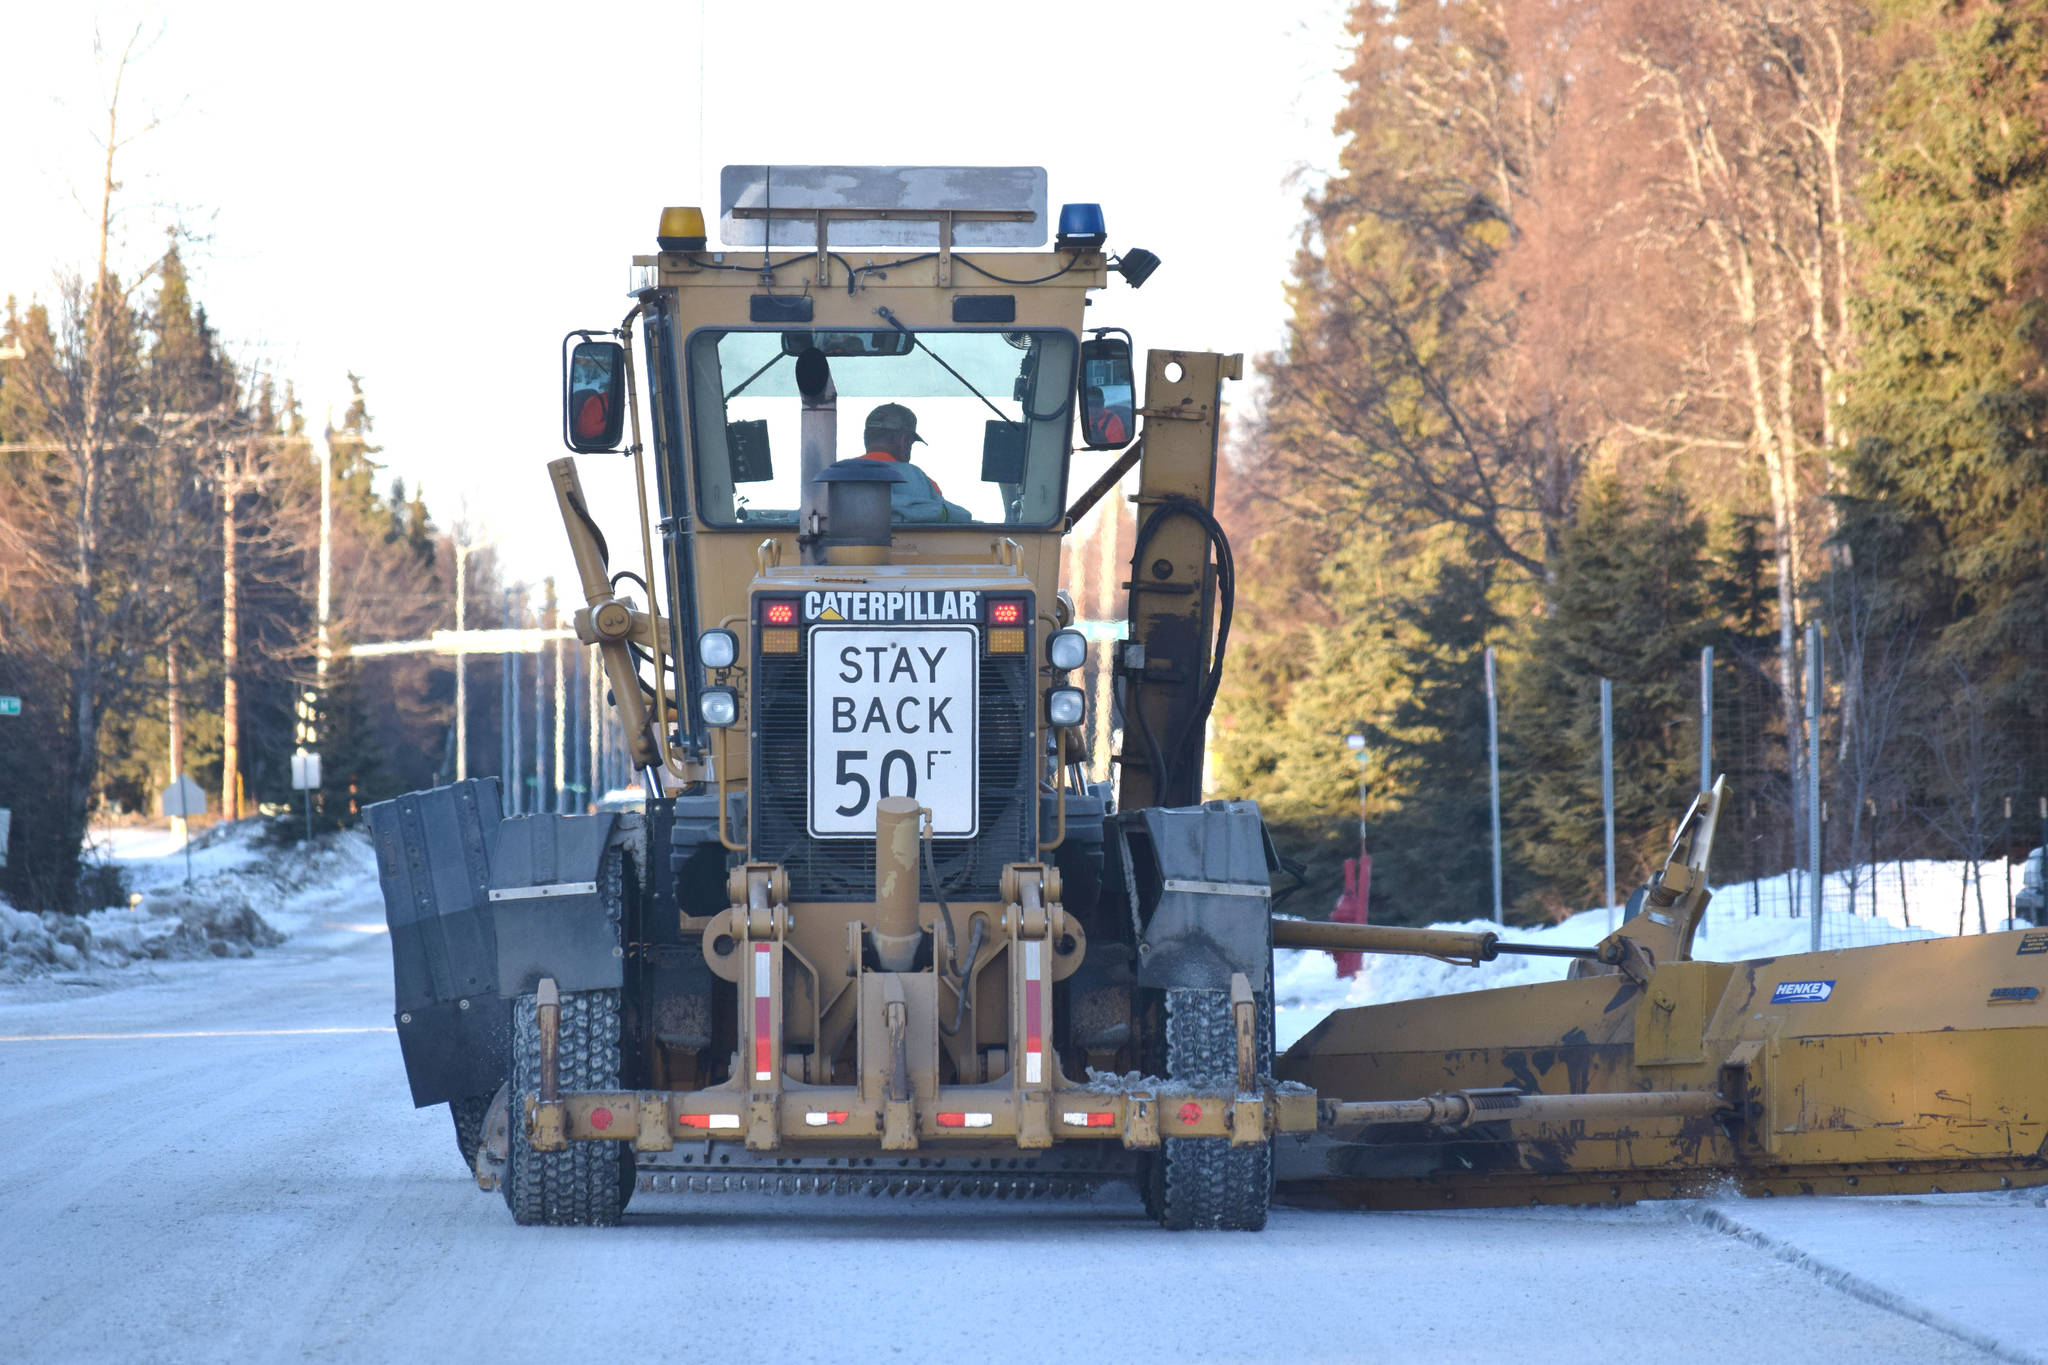 A contractor plows snow down Forest Drive in Kenai on Jan. 17, 2019. (Photo by Brian Mazurek/Peninsula Clarion)